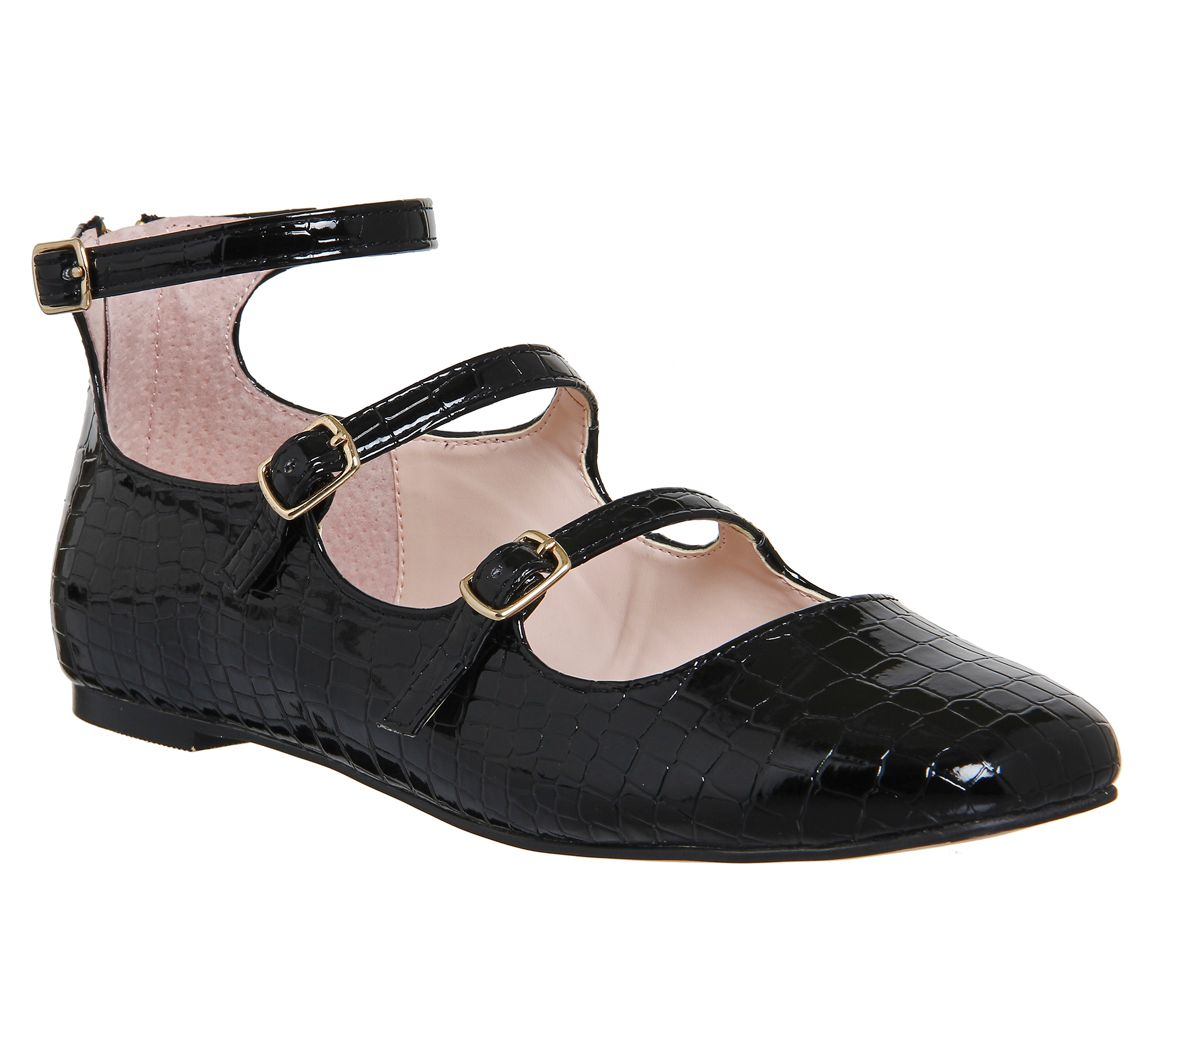 Office Phoenix mary jane flats Black Patent £40.00 AT vintagedancer.com